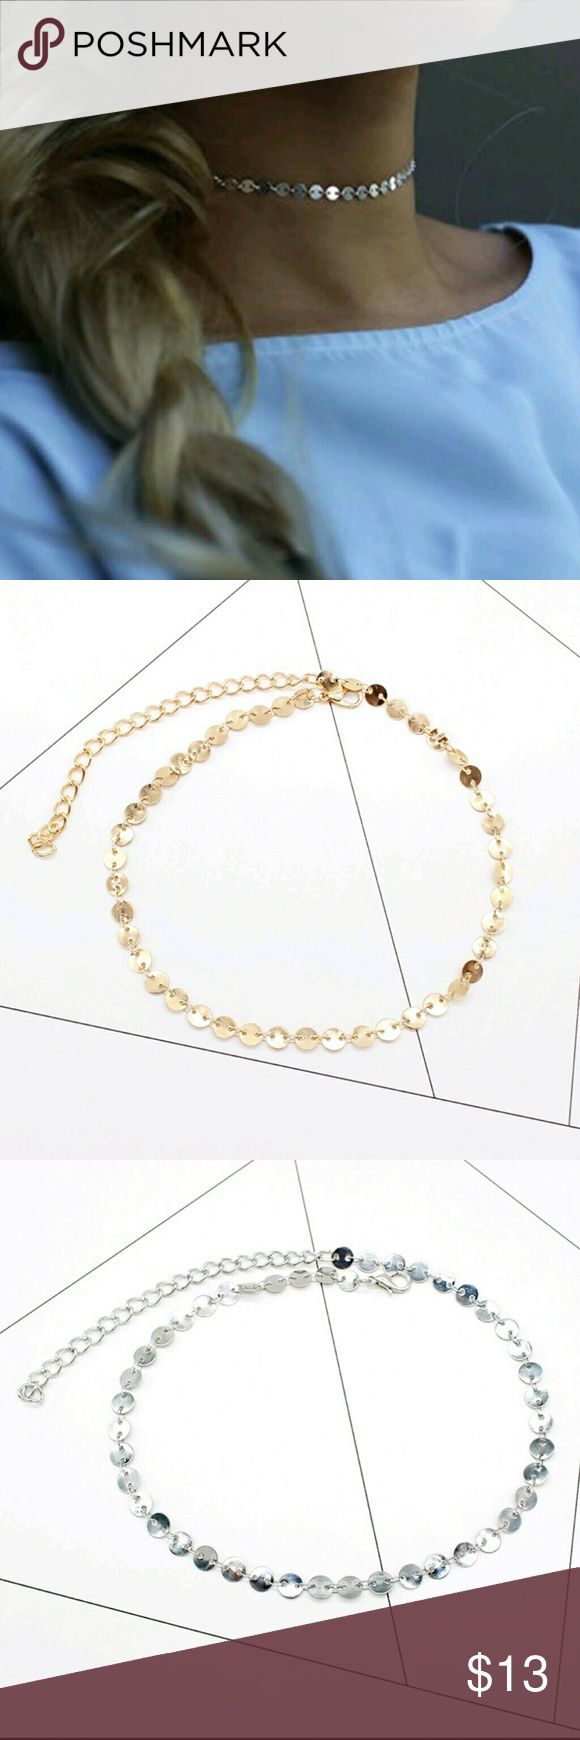 Sequin Discovery Choker Beautiful sequin disc chocked in yellow gold and silver. 1 yellow gold 1 silver  Price is firm unless bundled. Street Style Jewelry Necklaces